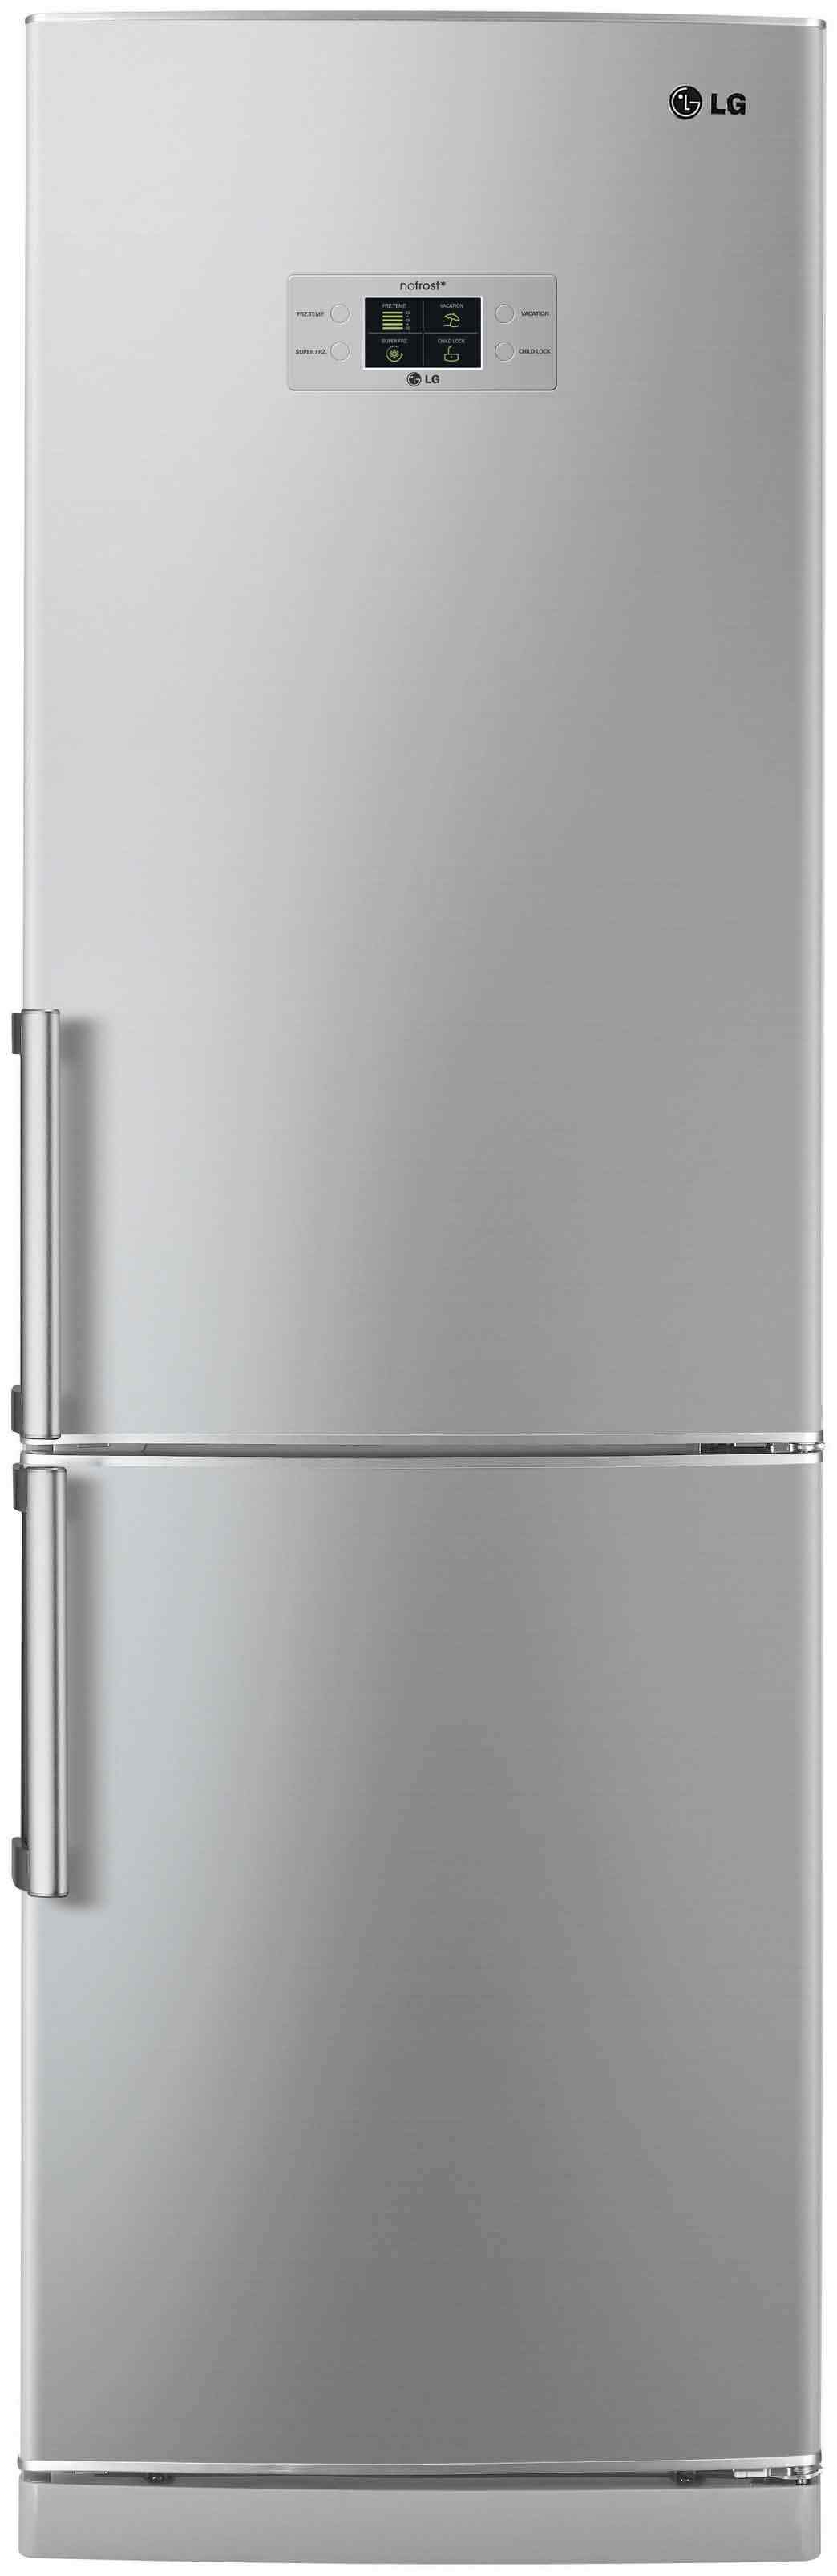 LG ​GB3133PVJW 322 Litre Frost Free Freestanding Fridge Freezer